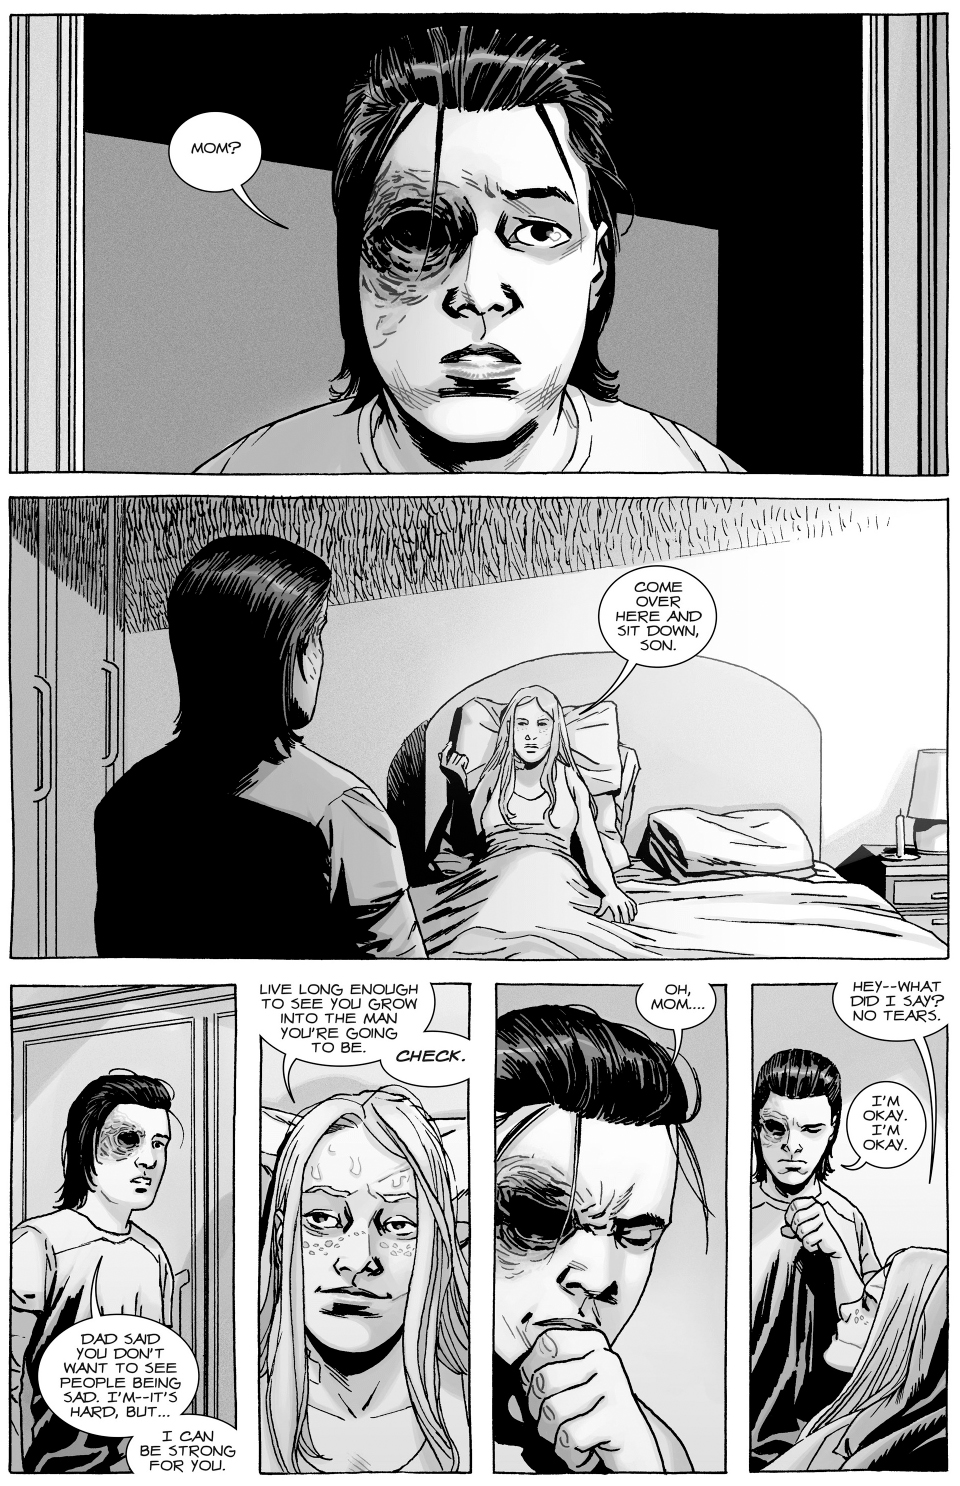 Andrea's Advice On Love (The Walking Dead) | Comicnewbies